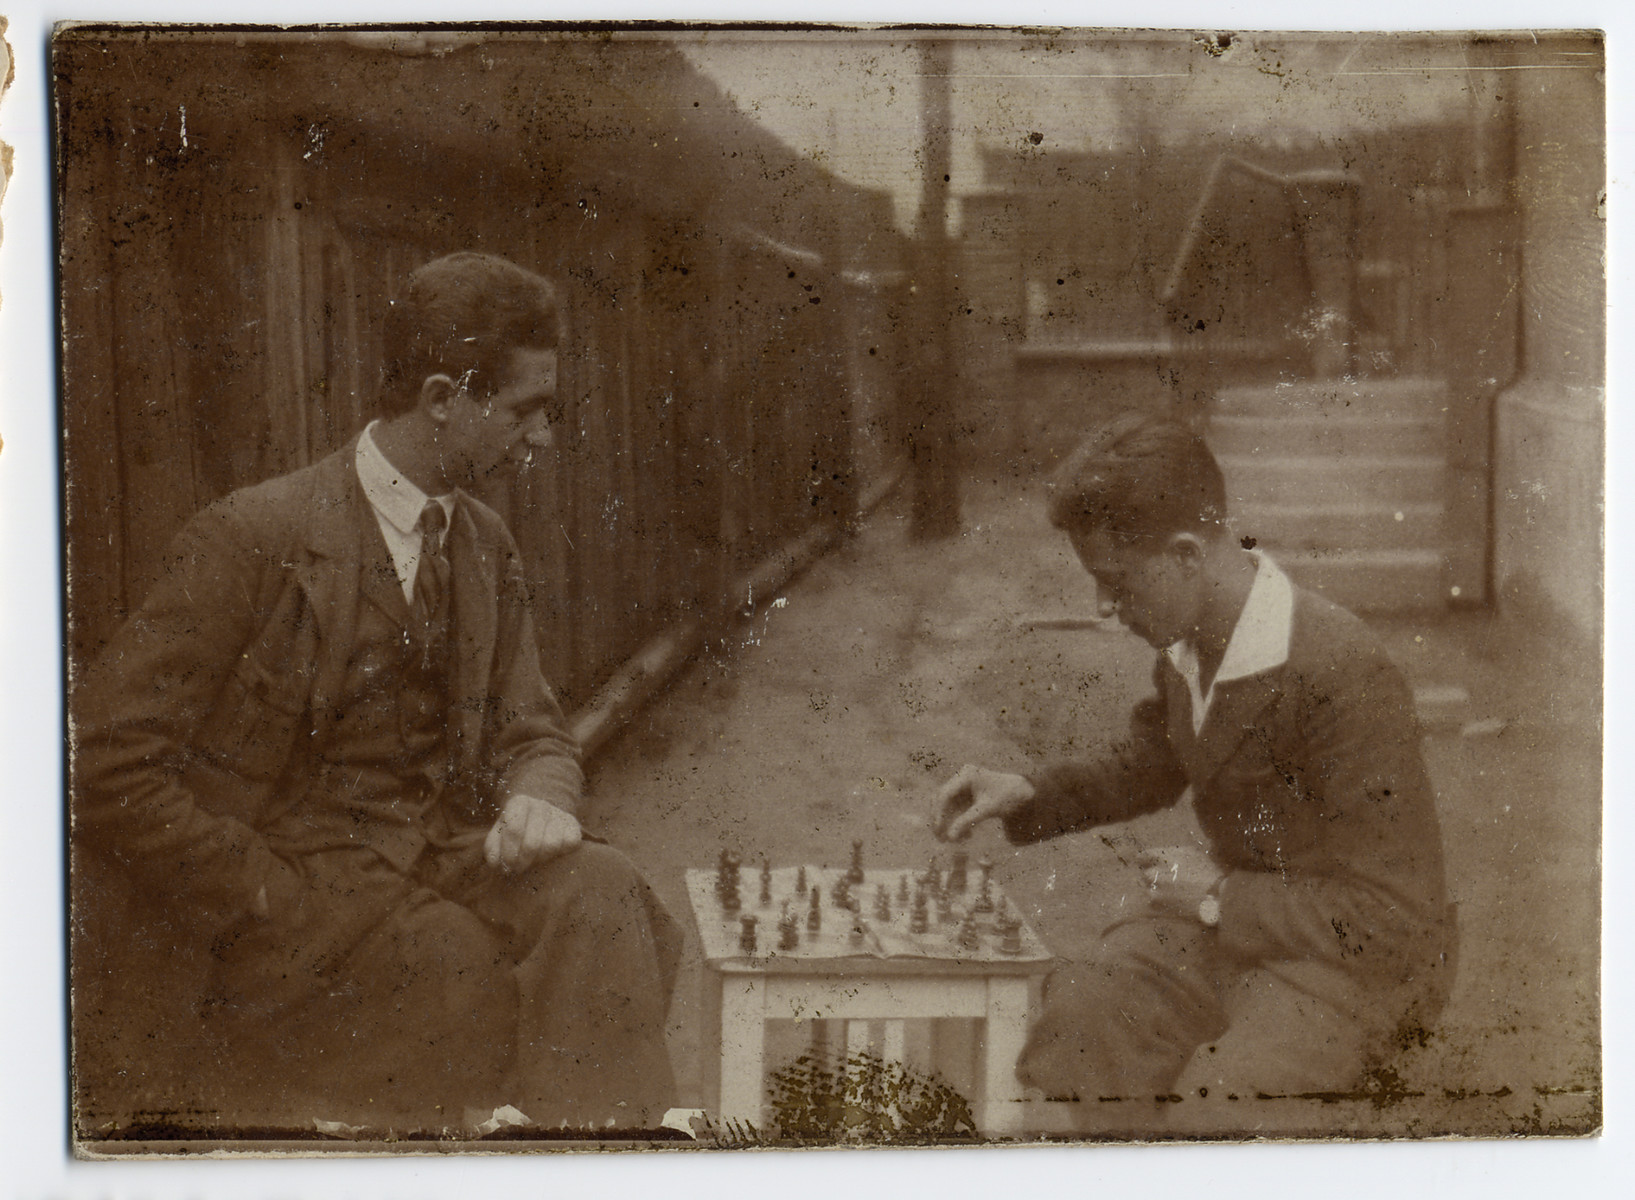 Julek (Joel) Bialer (right) plays chess outside in a courtyard with his father, Aron.